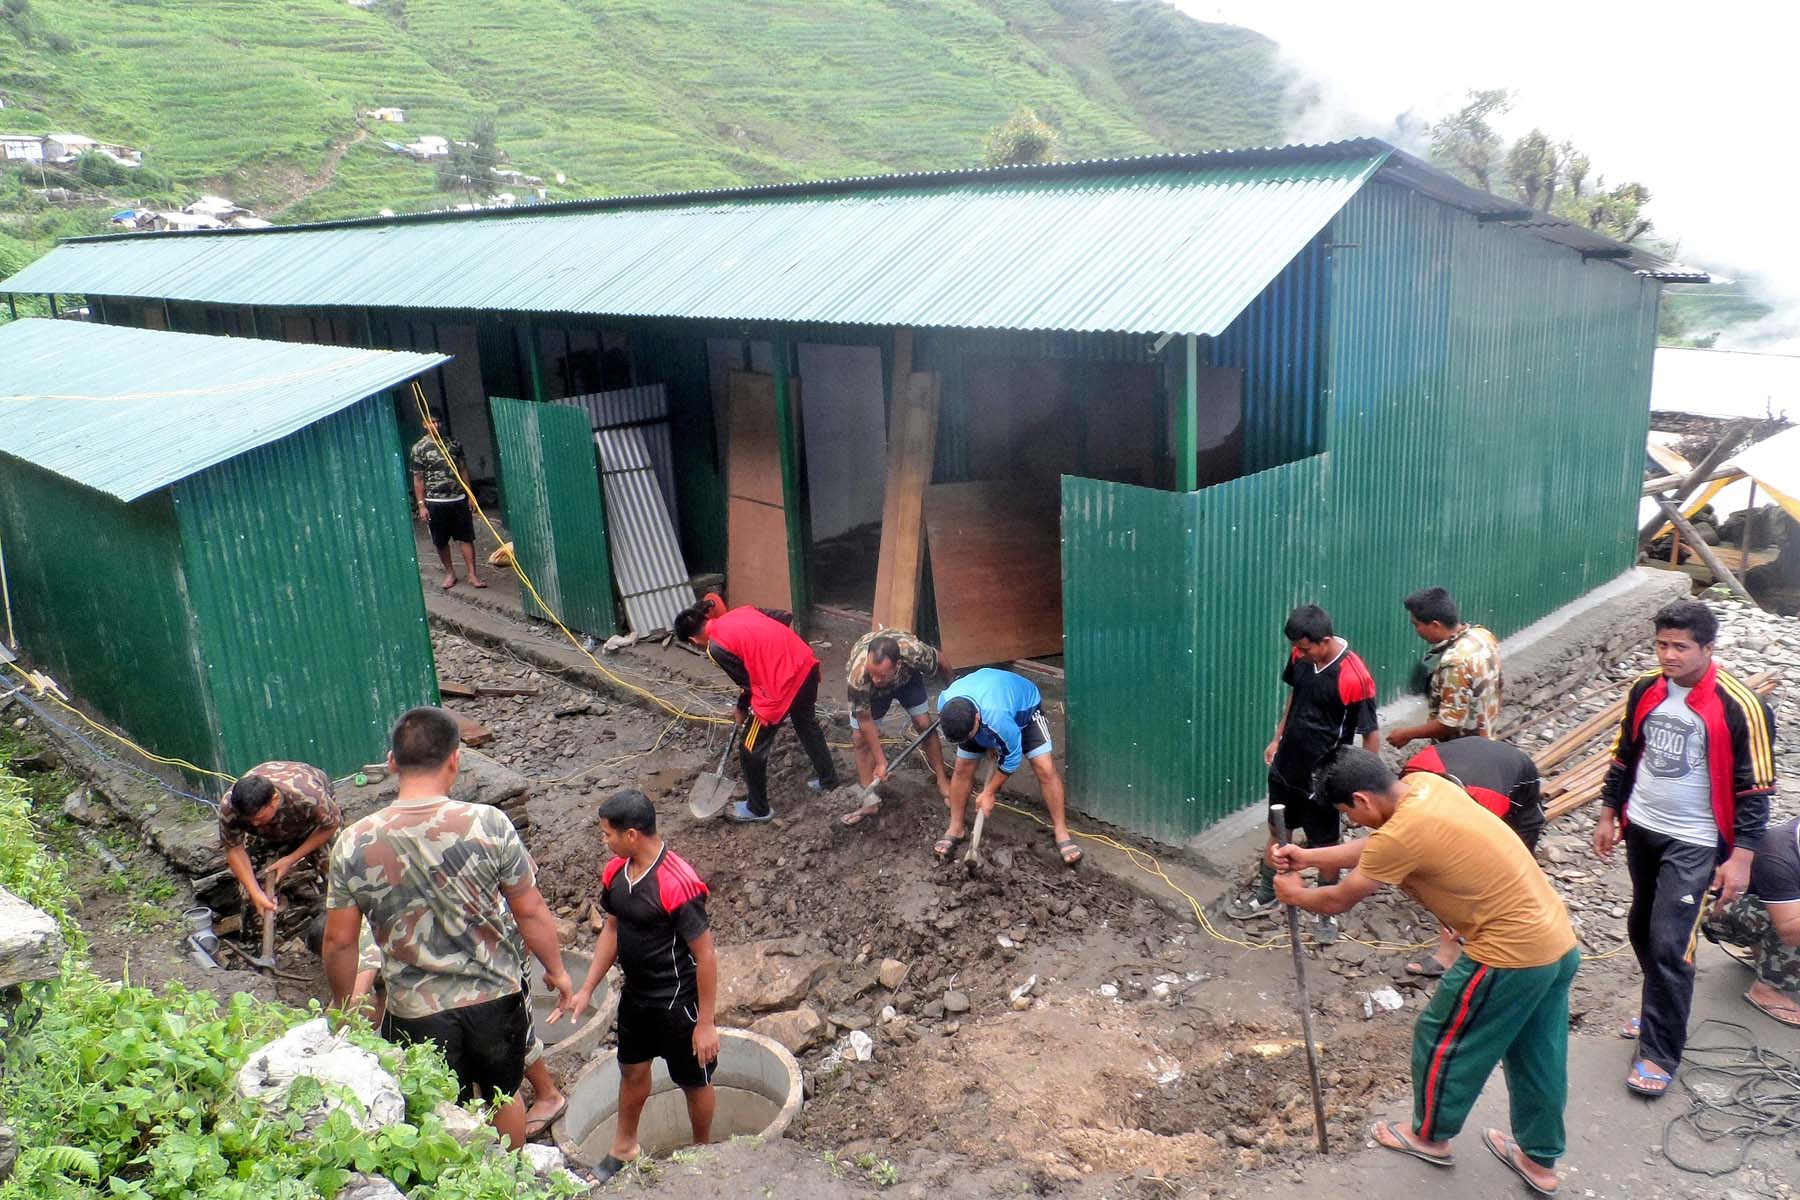 Personnel of the Nepal Army constructing an eight-room community shelters in Keraunja village of northern Gorkha, on Saturday, June 25, 2016. Photo: RSS